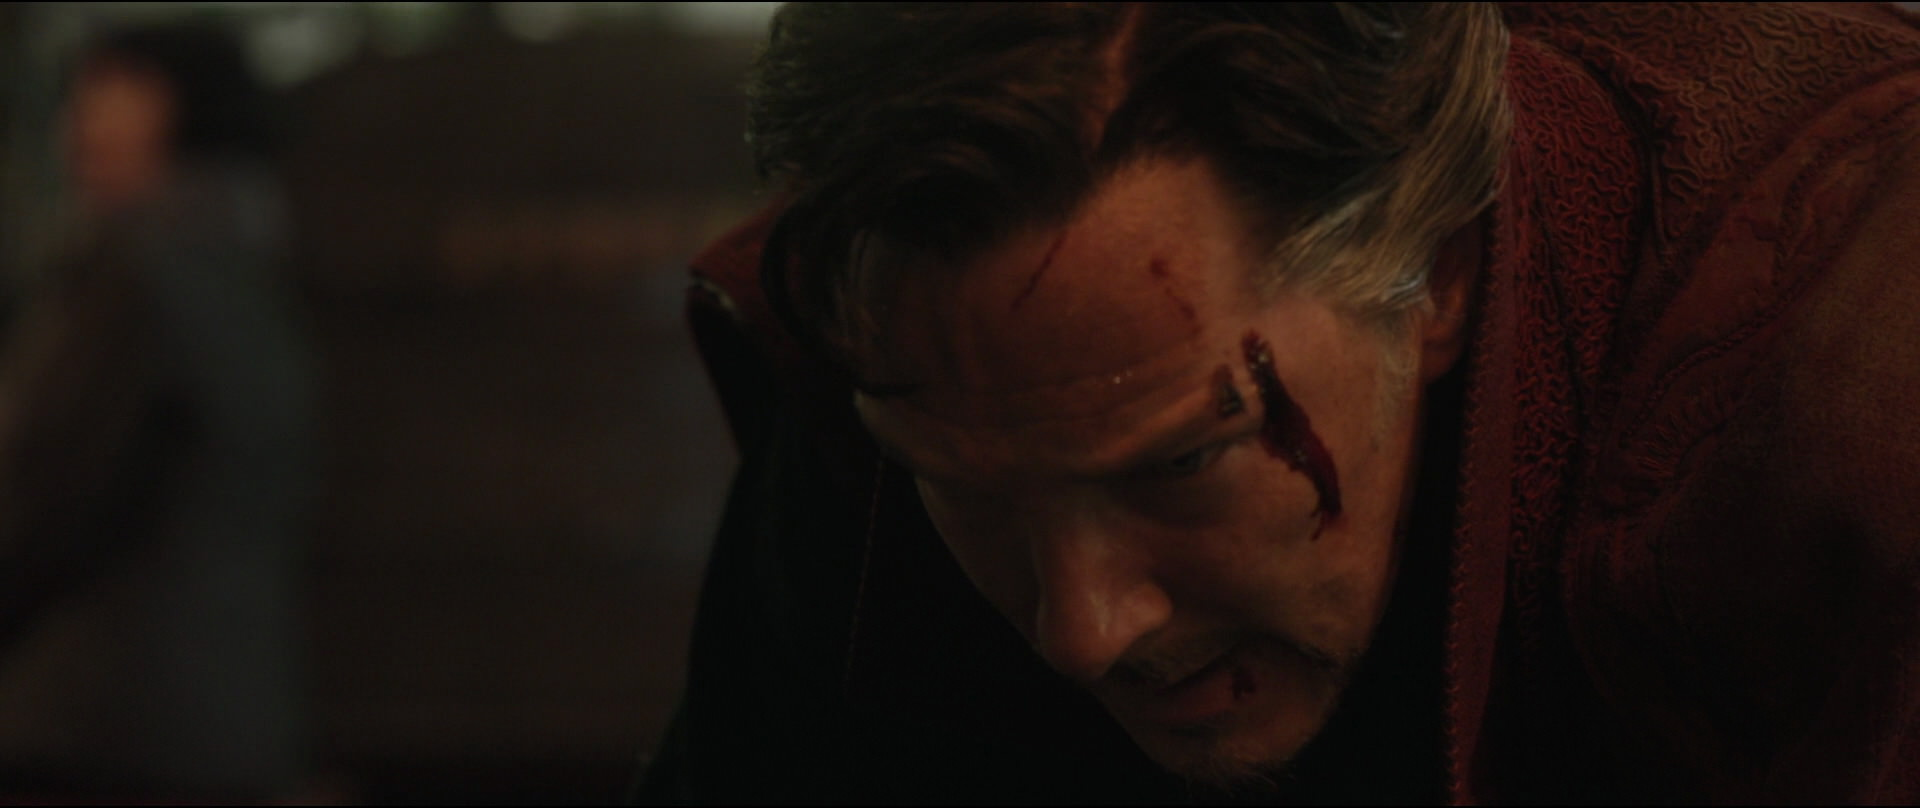 http://caps.pictures/201/6-doctorstrange/full/dr-strange-movie-screencaps.com-11331.jpg